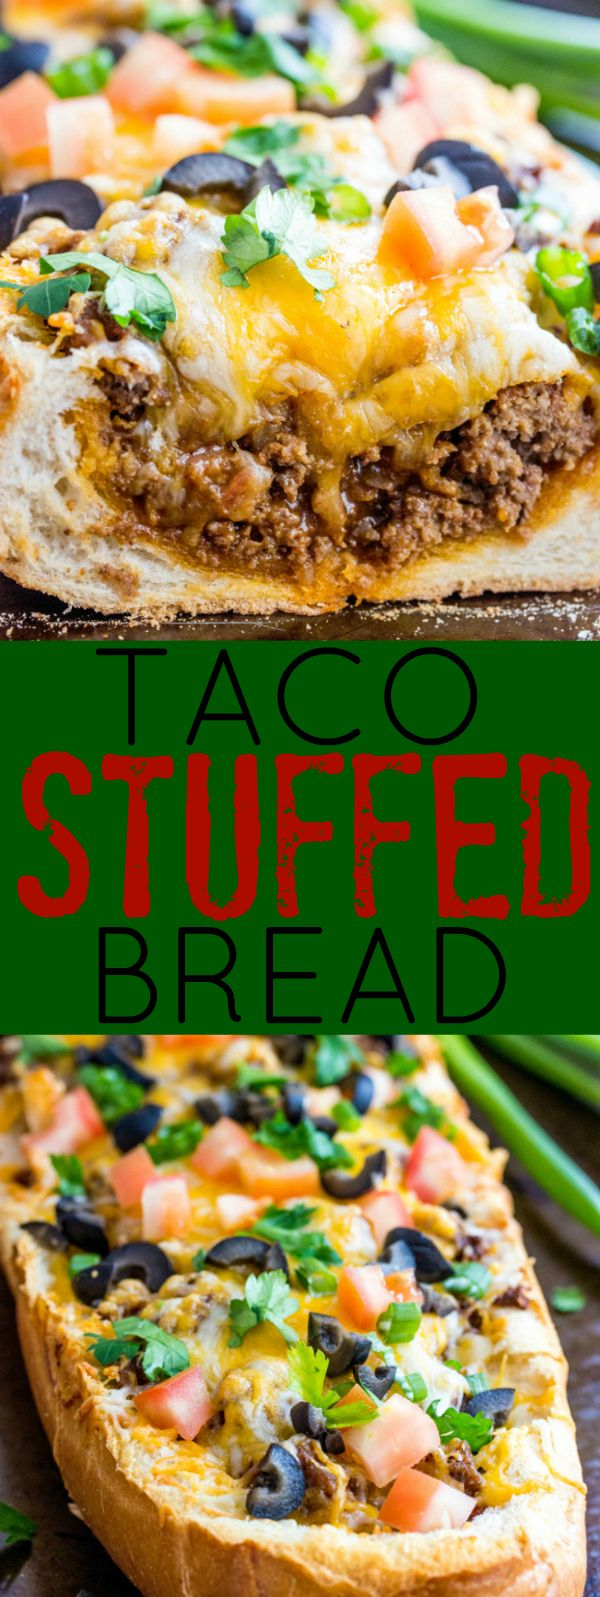 Taco Stuffed Bread - A quick and easy weeknight meal, stuffed with all your favorite things about Taco Night!